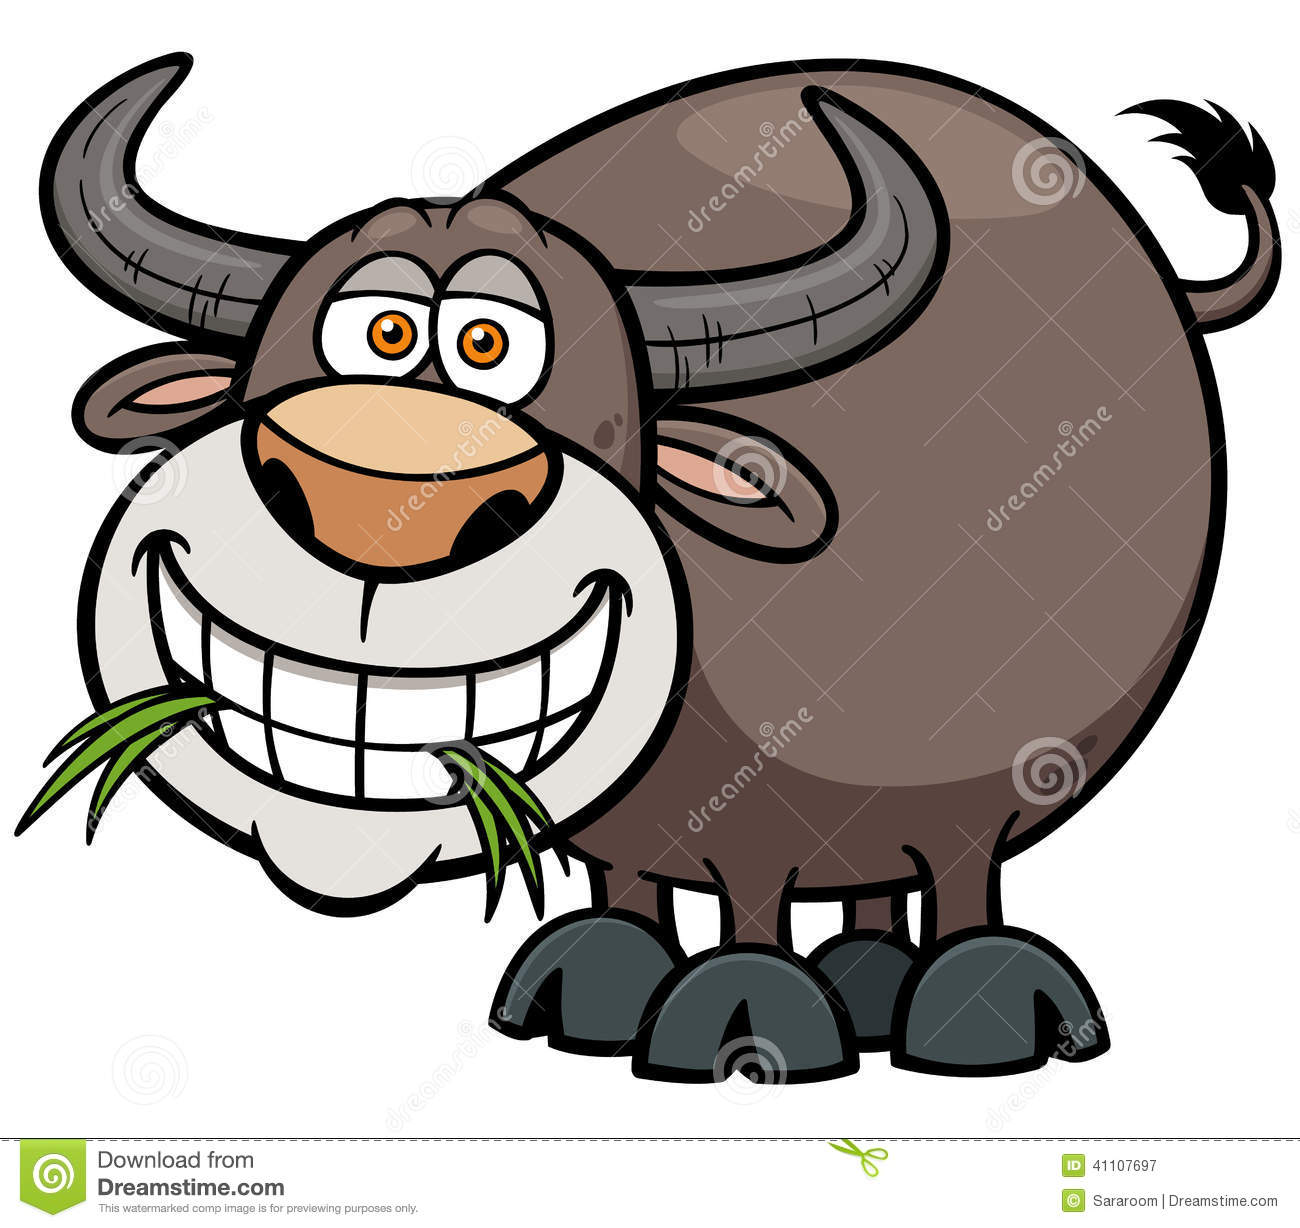 Water Buffalo clipart #8, Download drawings